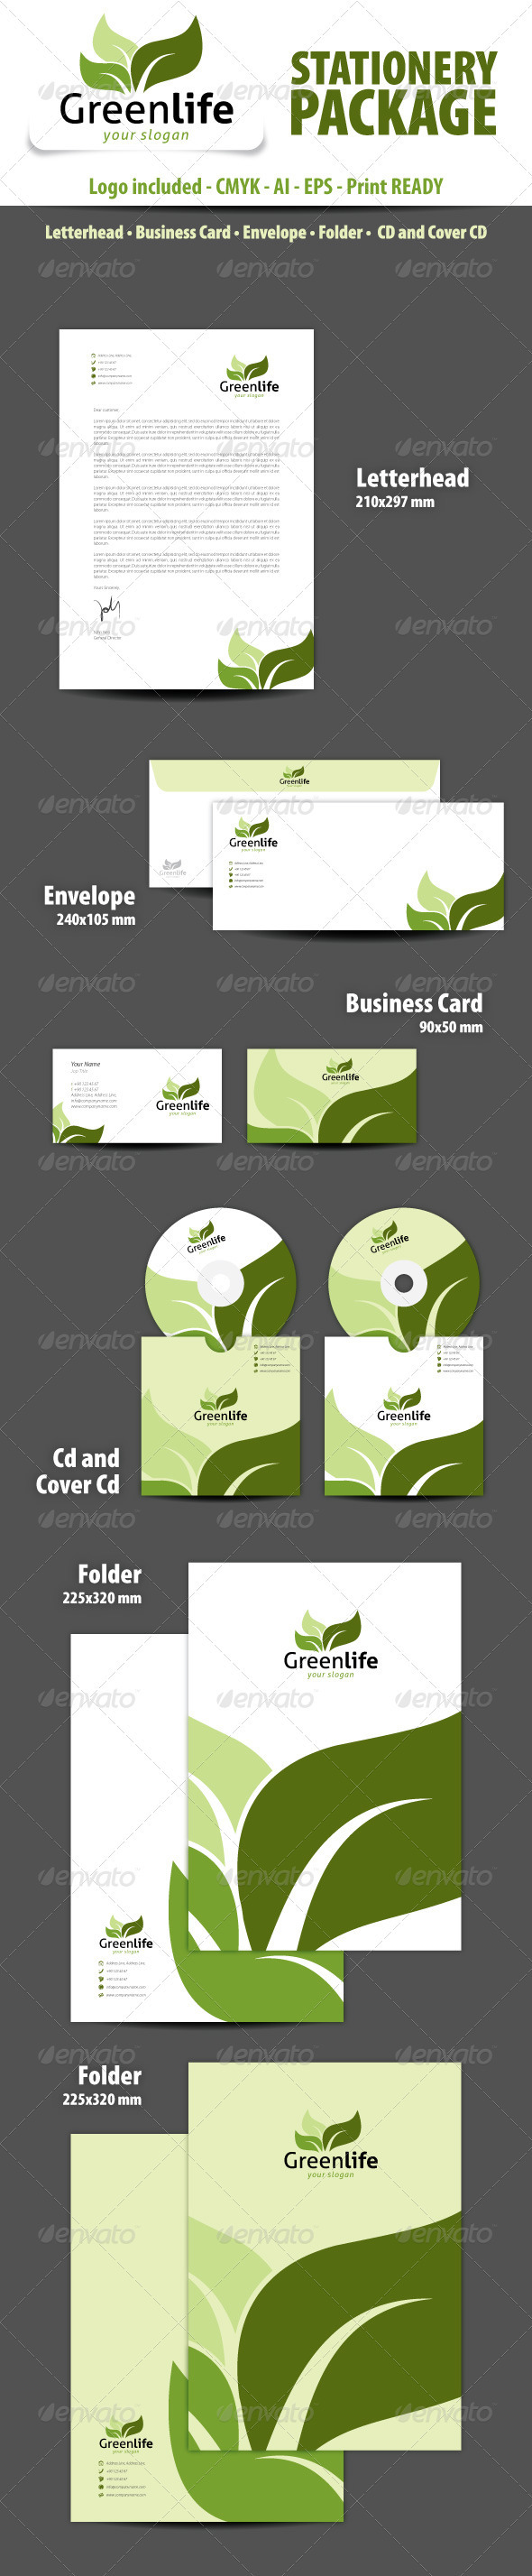 Greenlife Stationery Package  - Stationery Print Templates